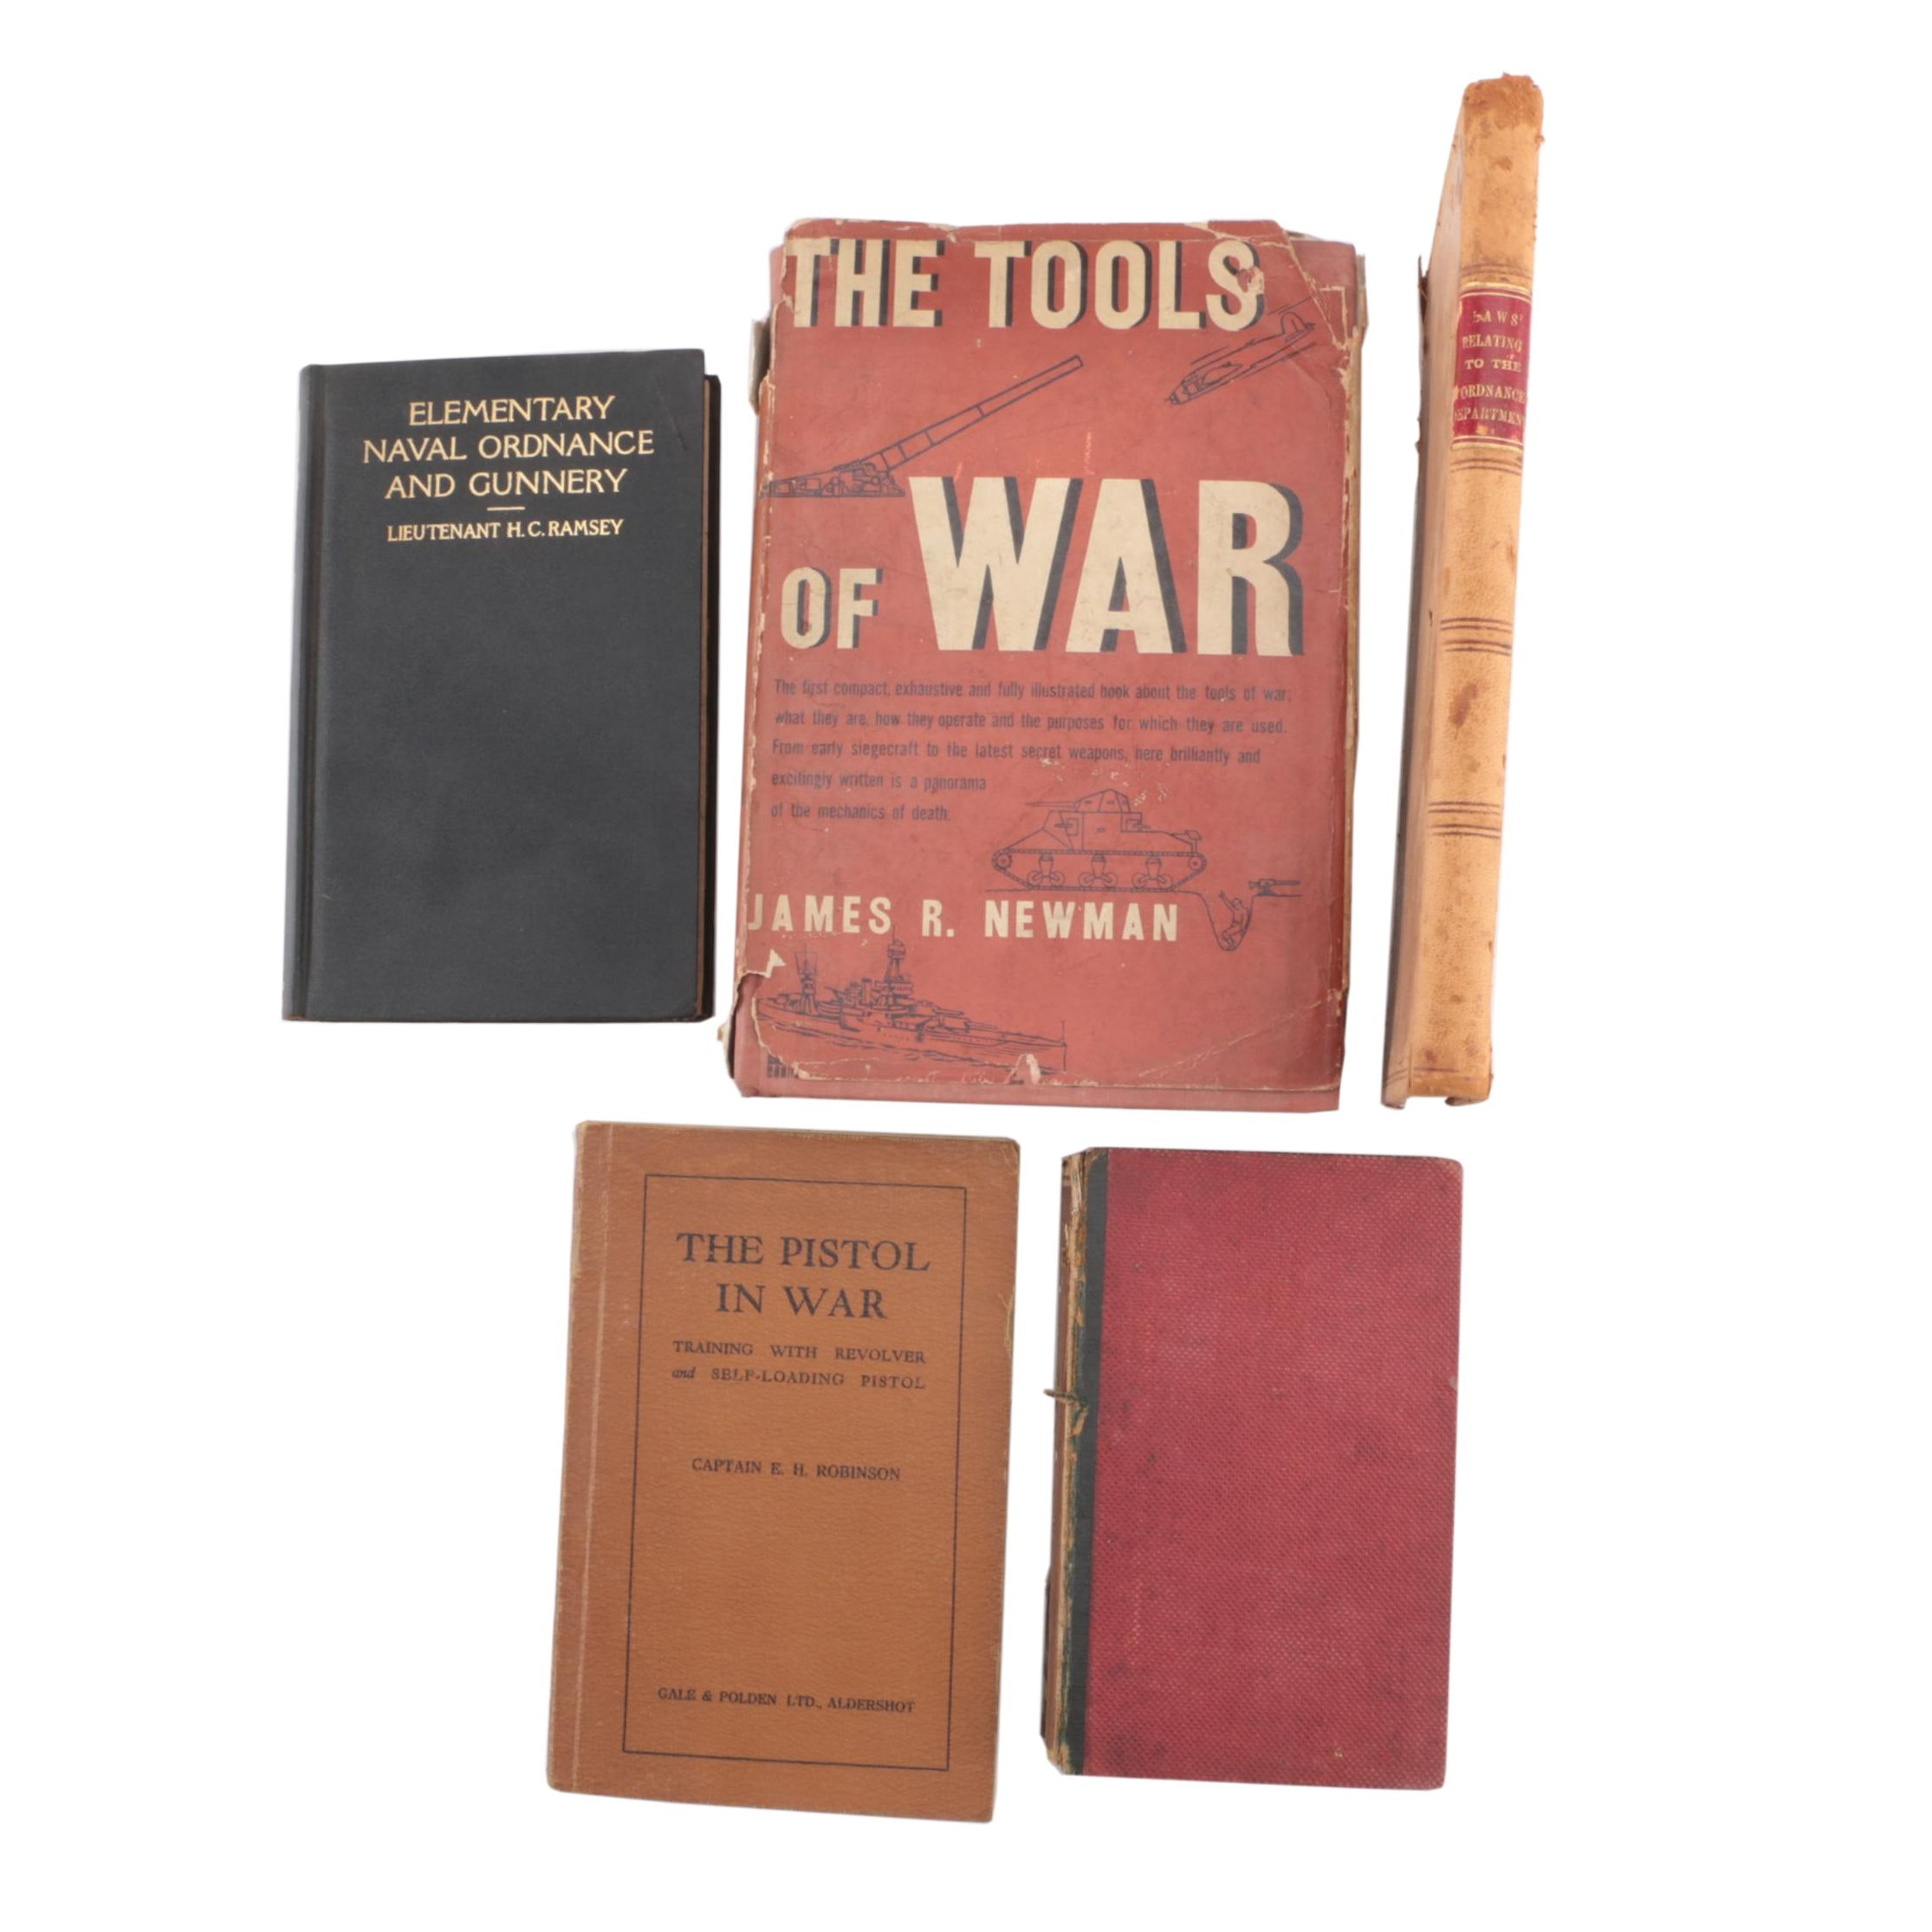 Vintage Military History and Weaponry Books